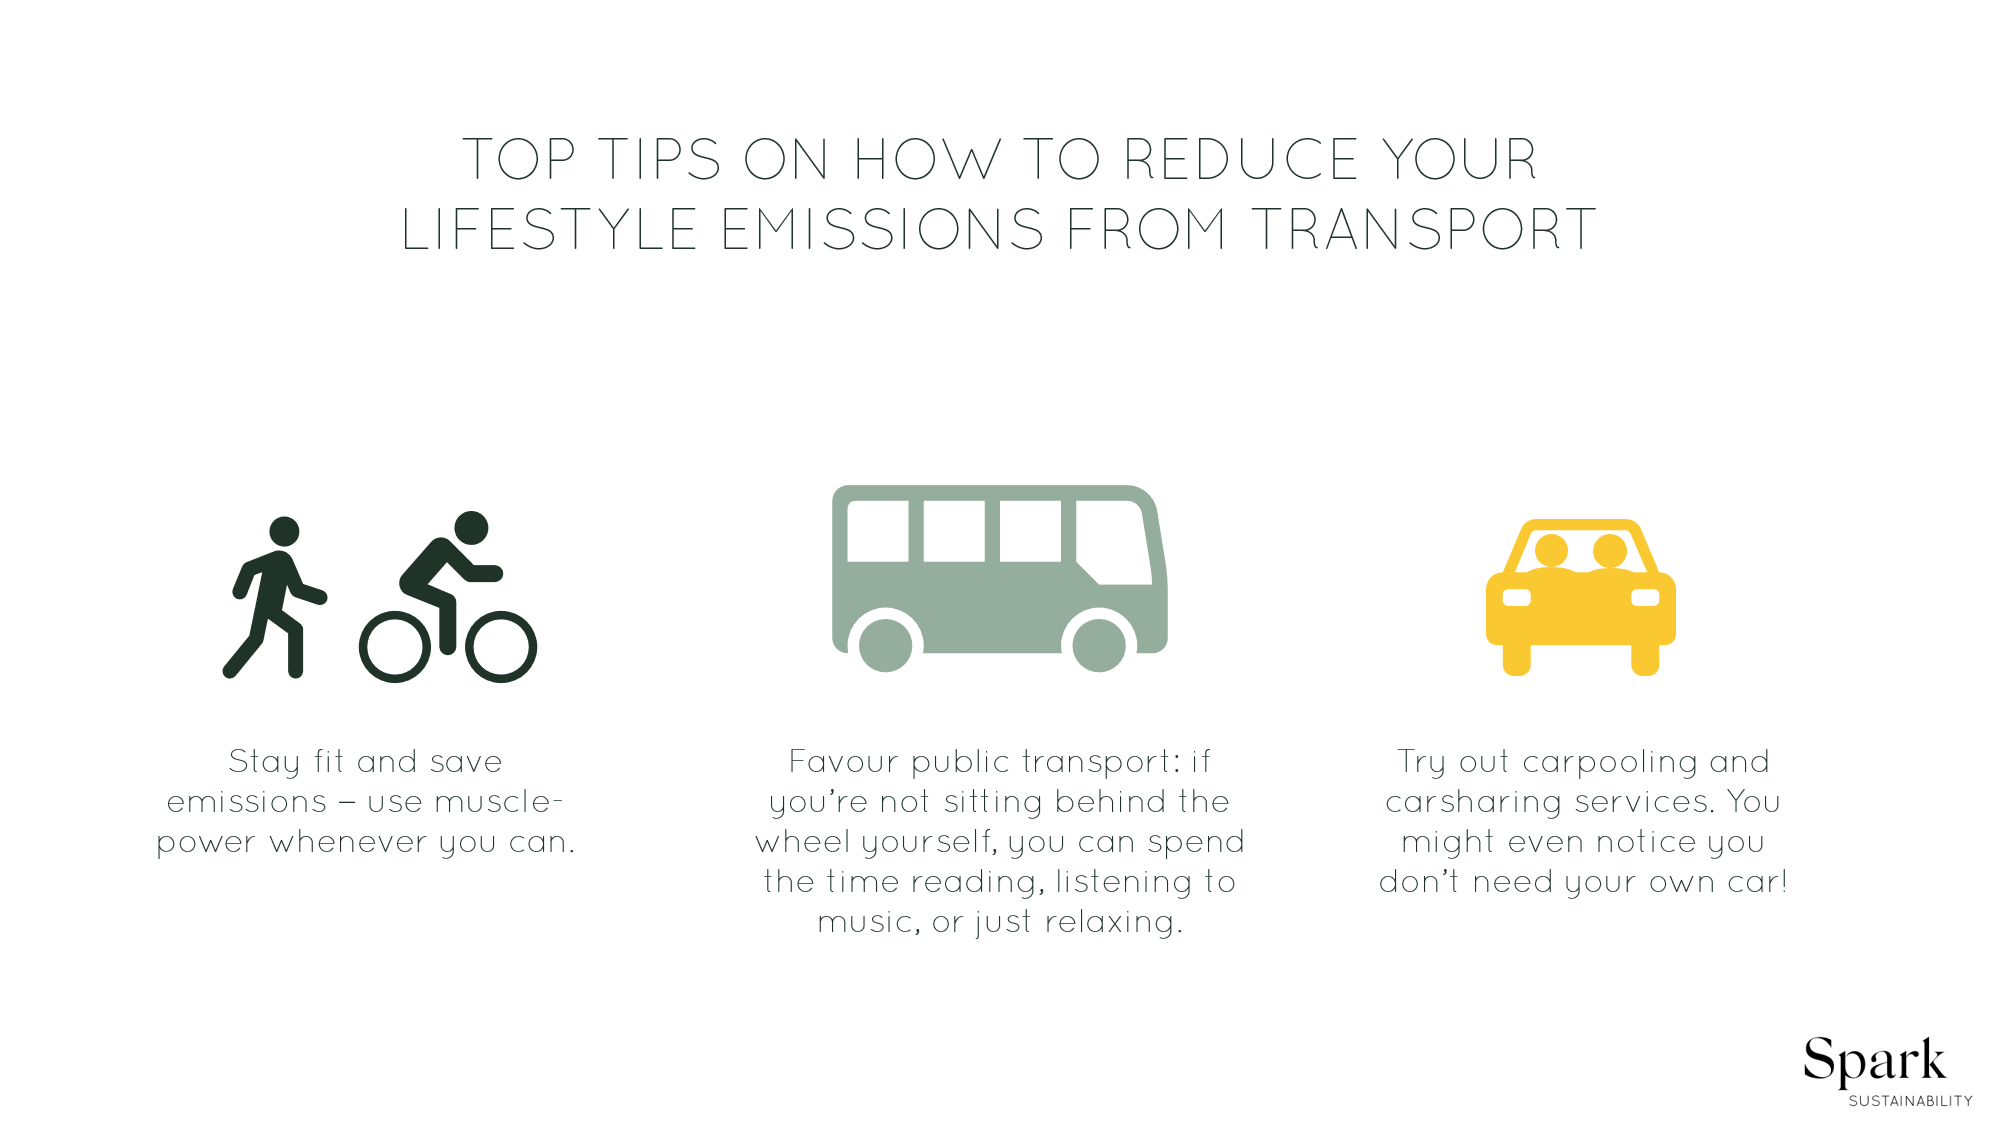 3 tips on how to reduce your lifestyle emissions from transport